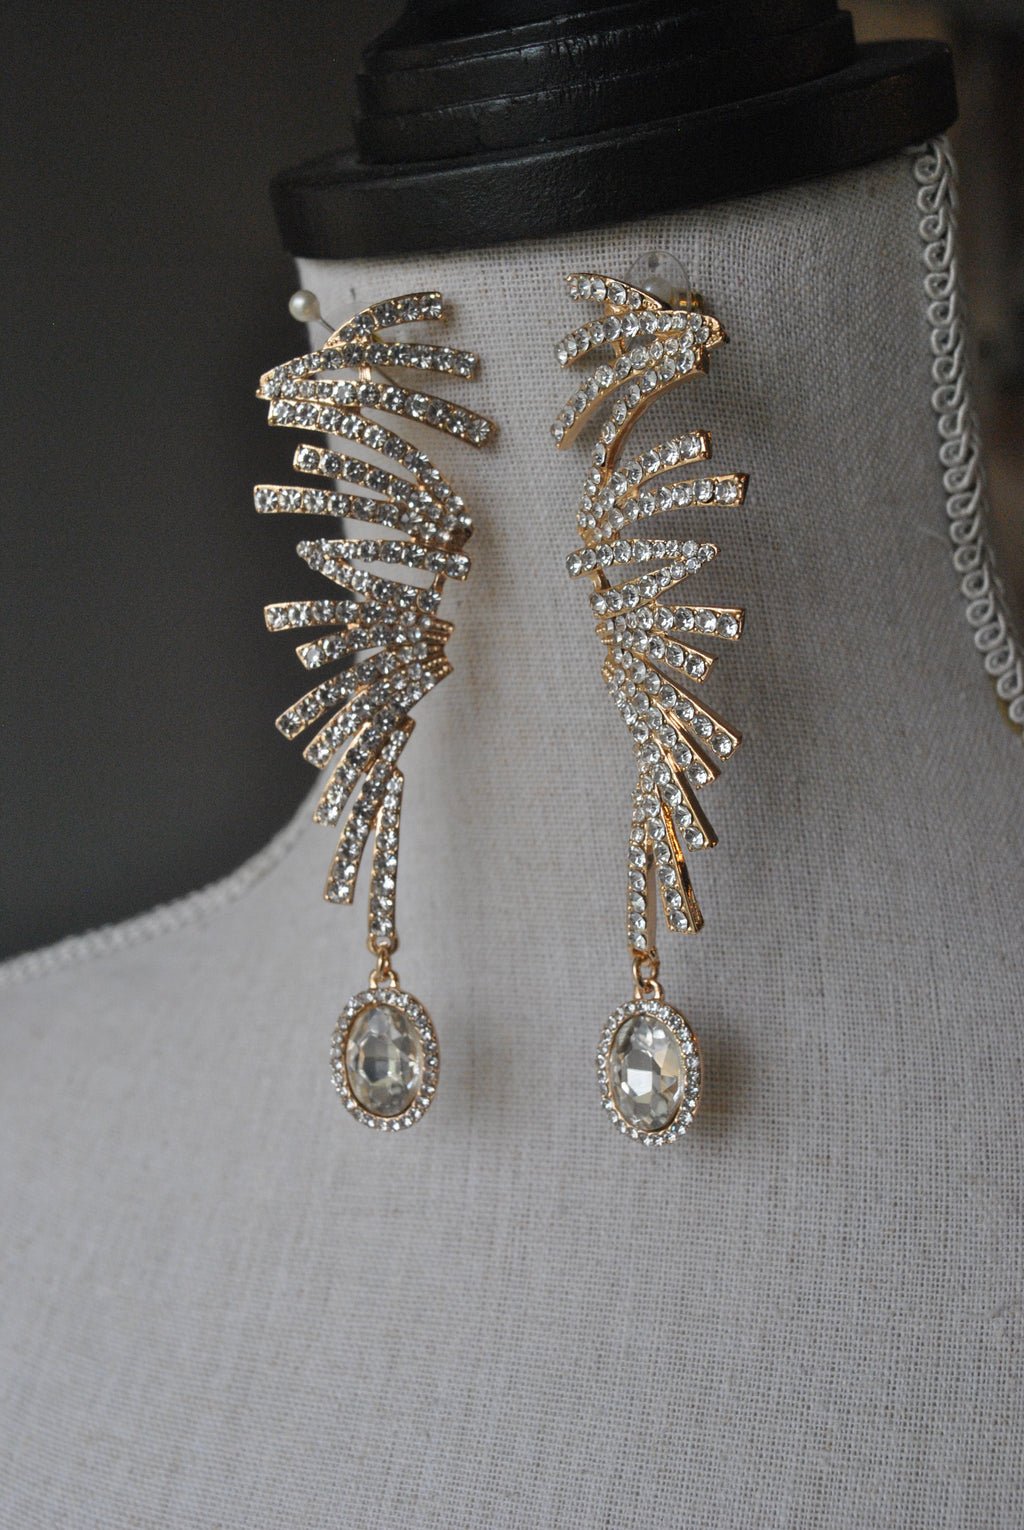 FASHION COLLECTION - CLEAR CRYSTALS ON GOLD STATEMENT EVENING EARRINGS